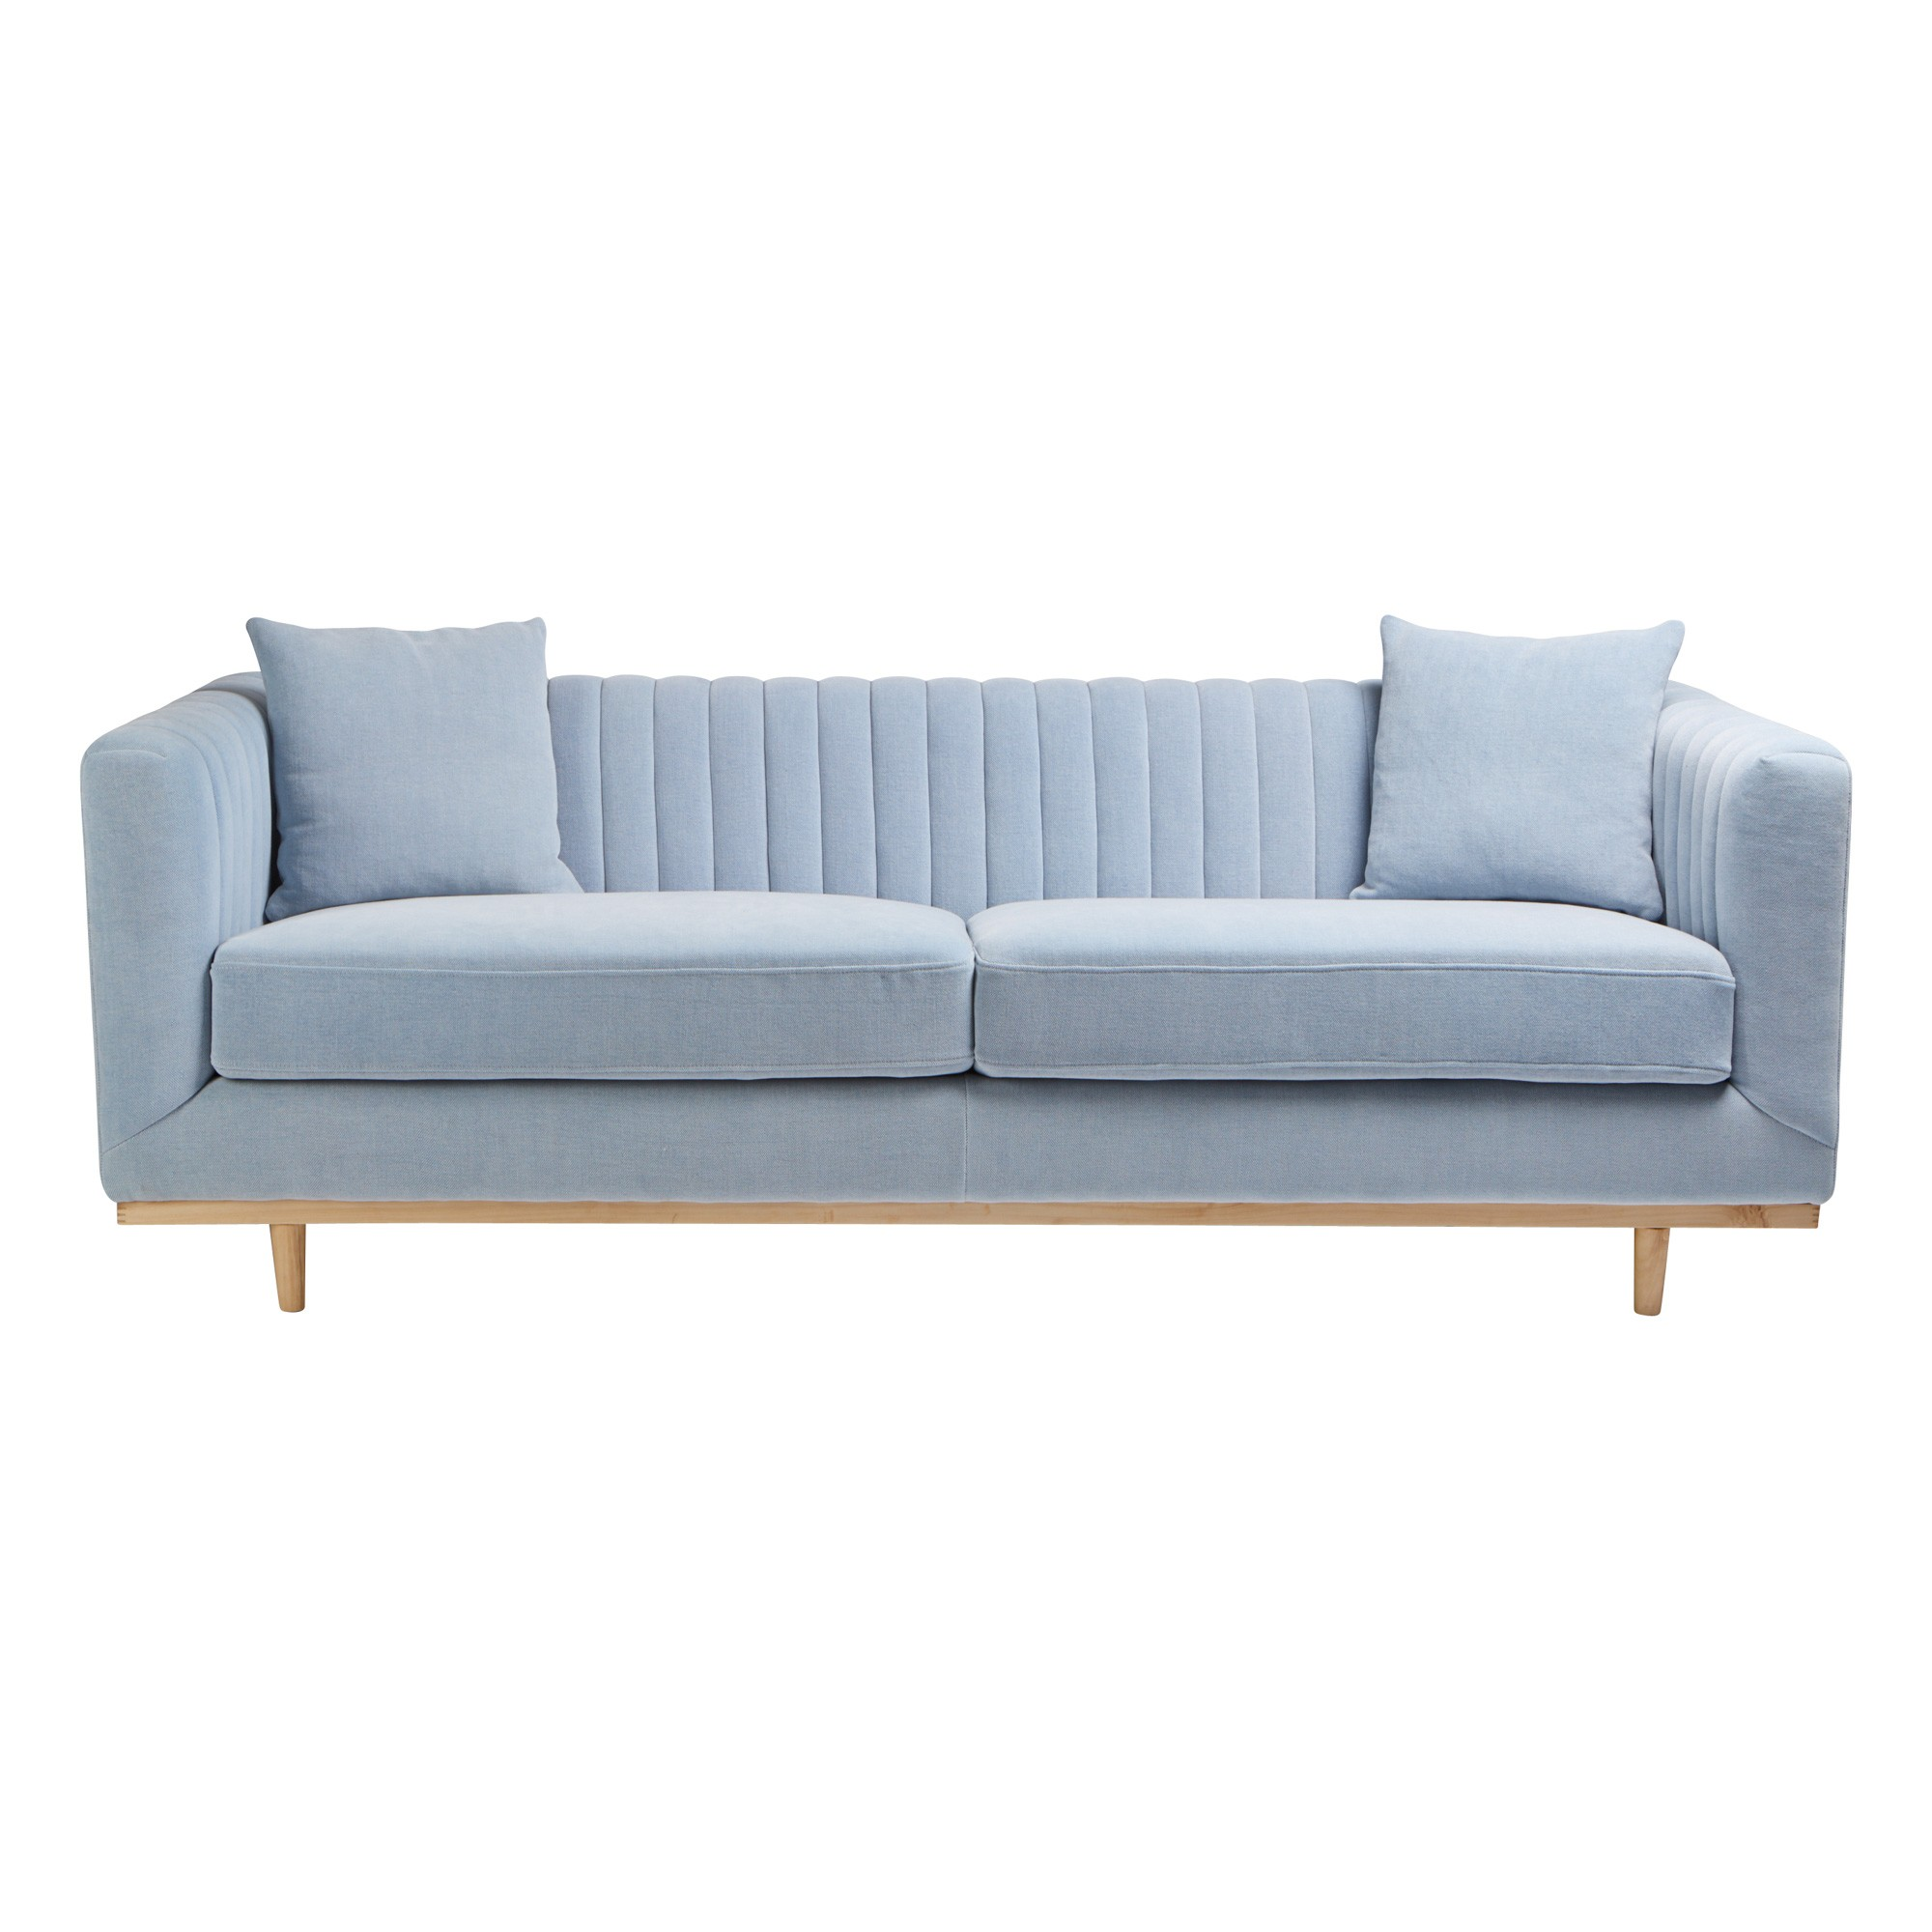 Raphael Velours Fabric Sofa, 3 Seater, Blue